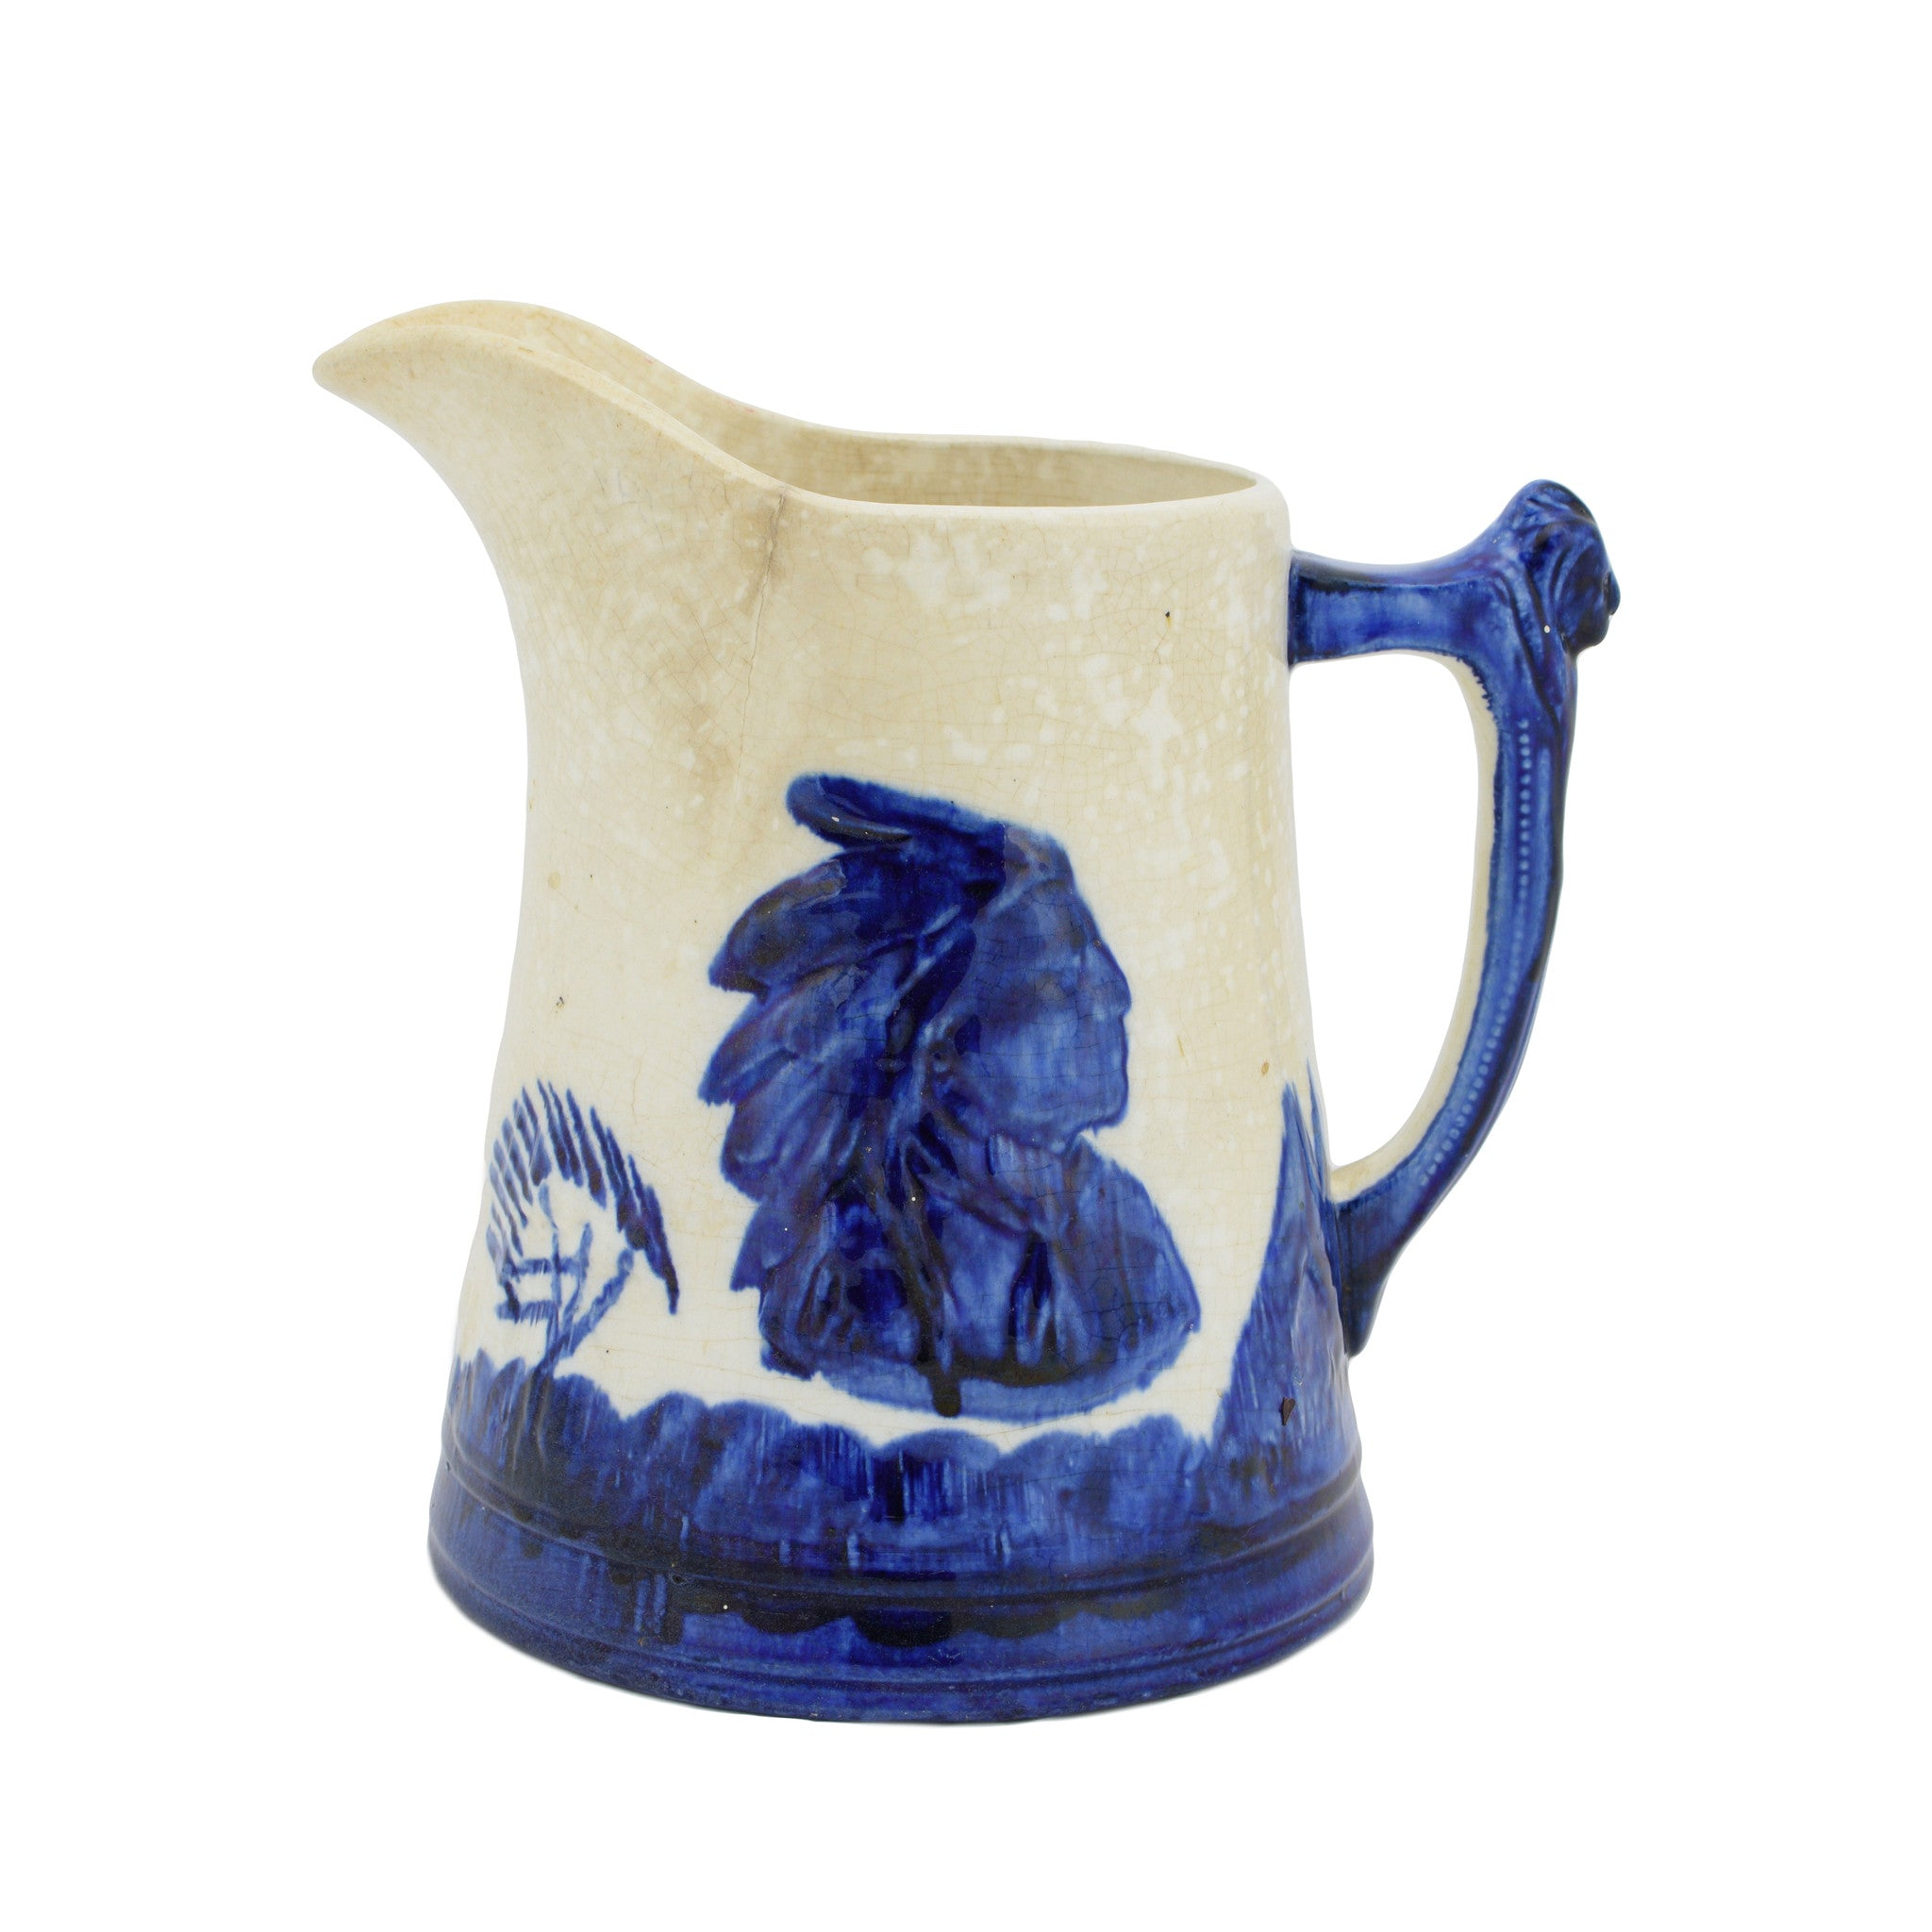 Sleepy Eye lodge furnishings other, pitcher